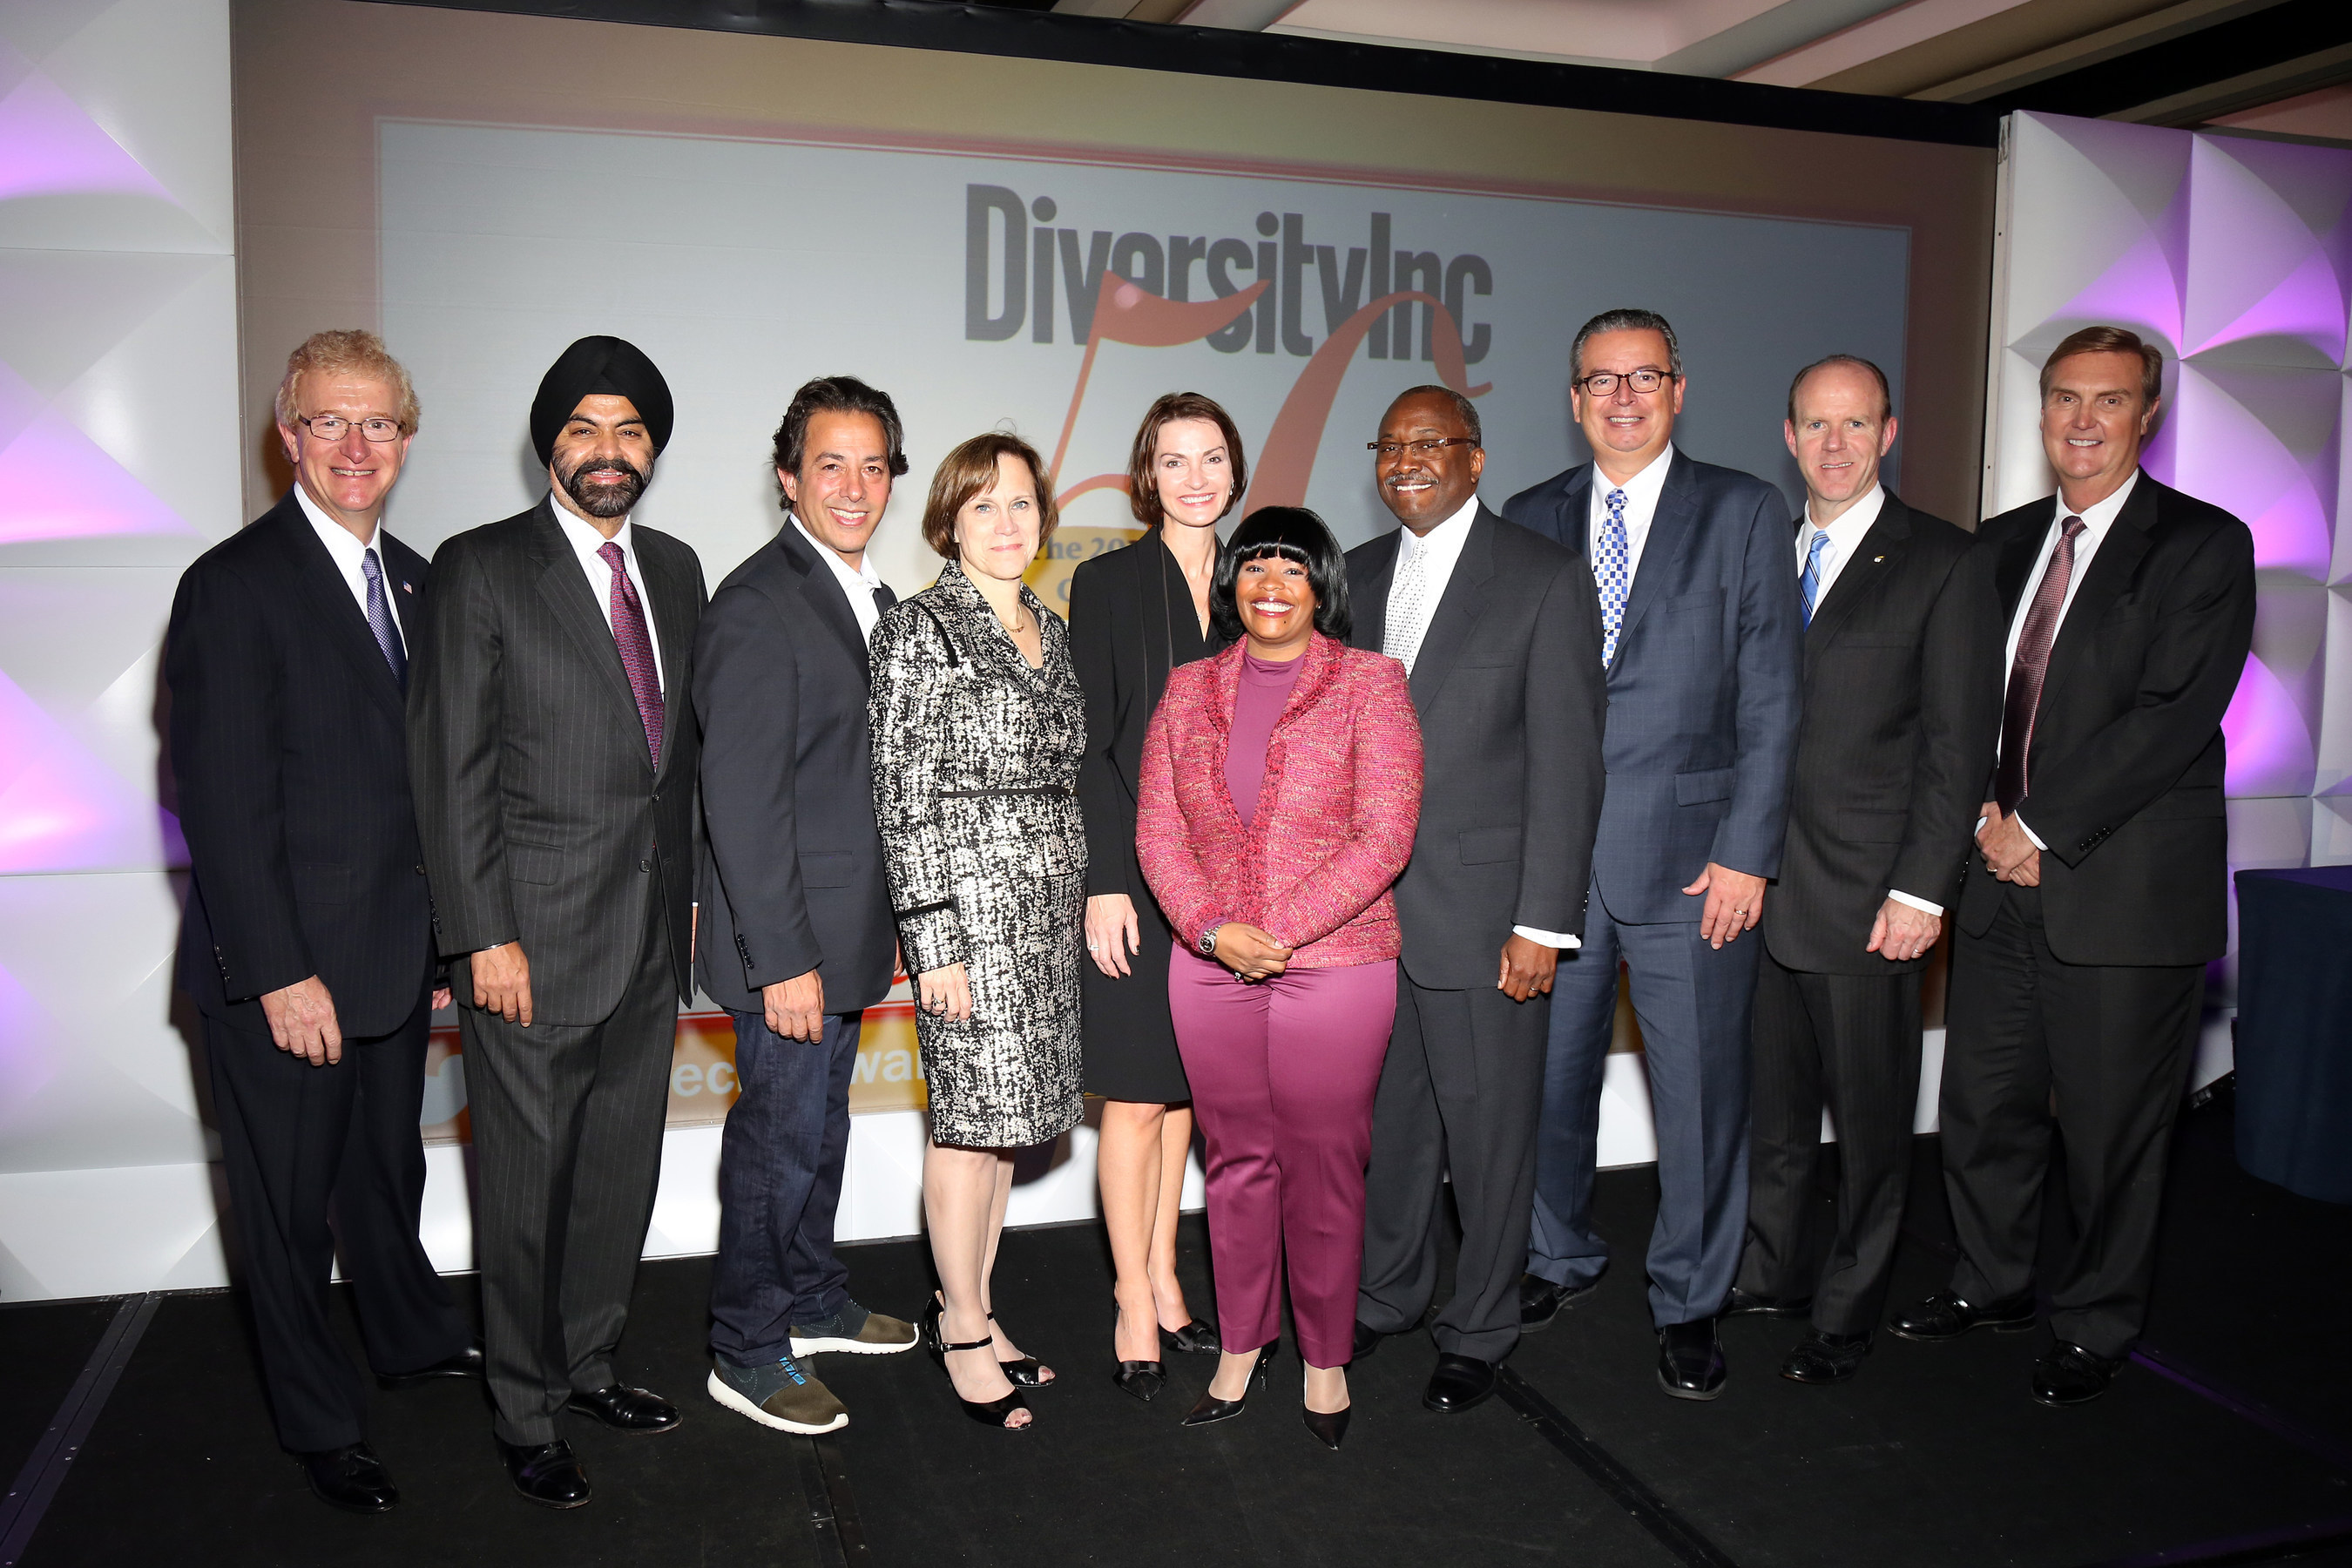 From left to right: Stephen Holmes, Chairman and CEO, Wyndham Worldwide; Ajay Banga, President and CEO, ...